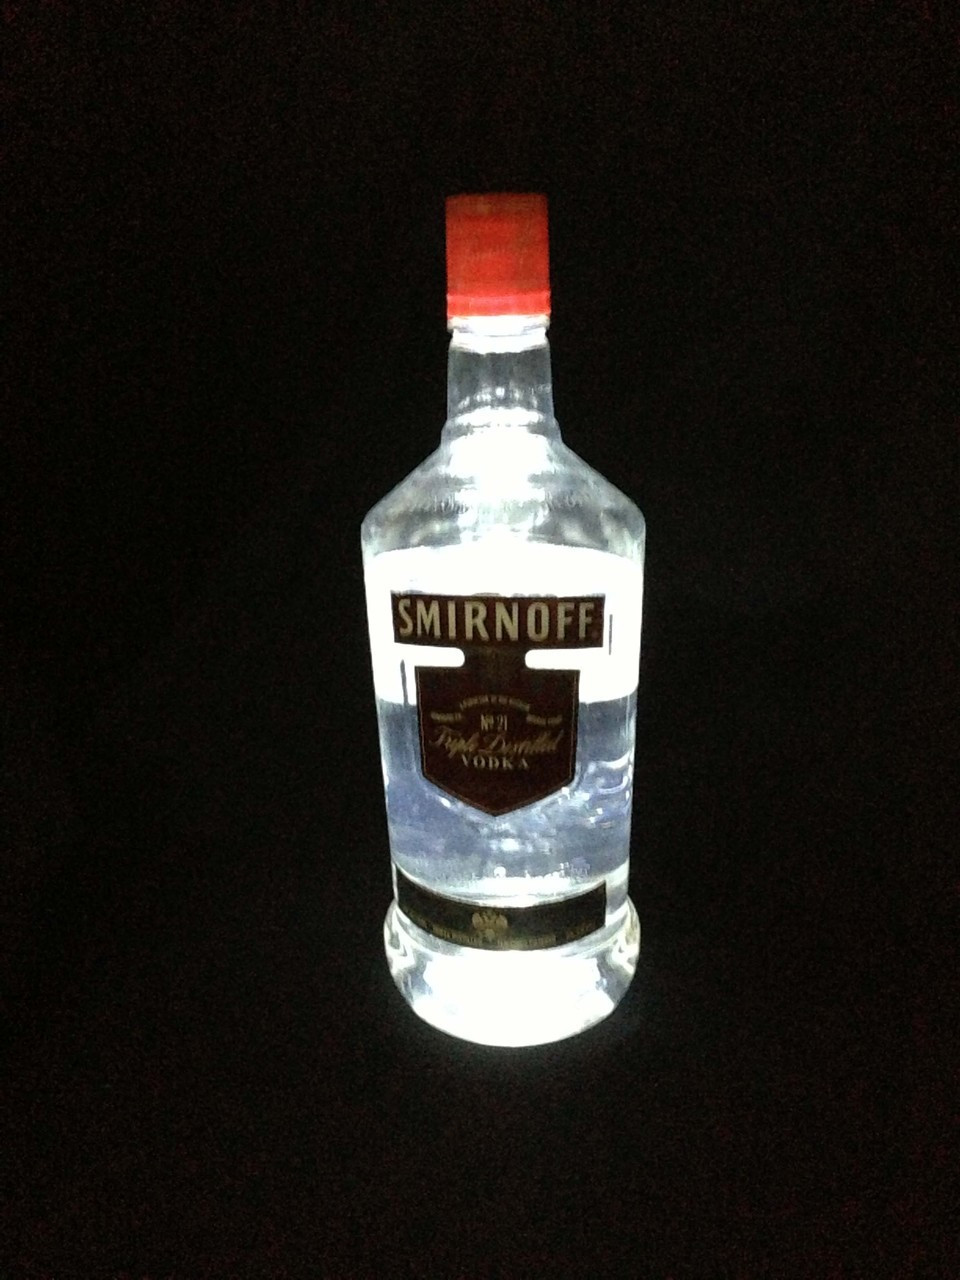 LED bottle, LED, Bottle, Coaster, Bottle glow, glow, glorifier, stick on, sticky, illuminated bottle, lightup bottle, light up bottle, mini bottle glow, vip bottle glow, glorifier bottle, stick on glorifier, make my bottle glow, liquor glow, cup glow, cup, plastic cup, glow